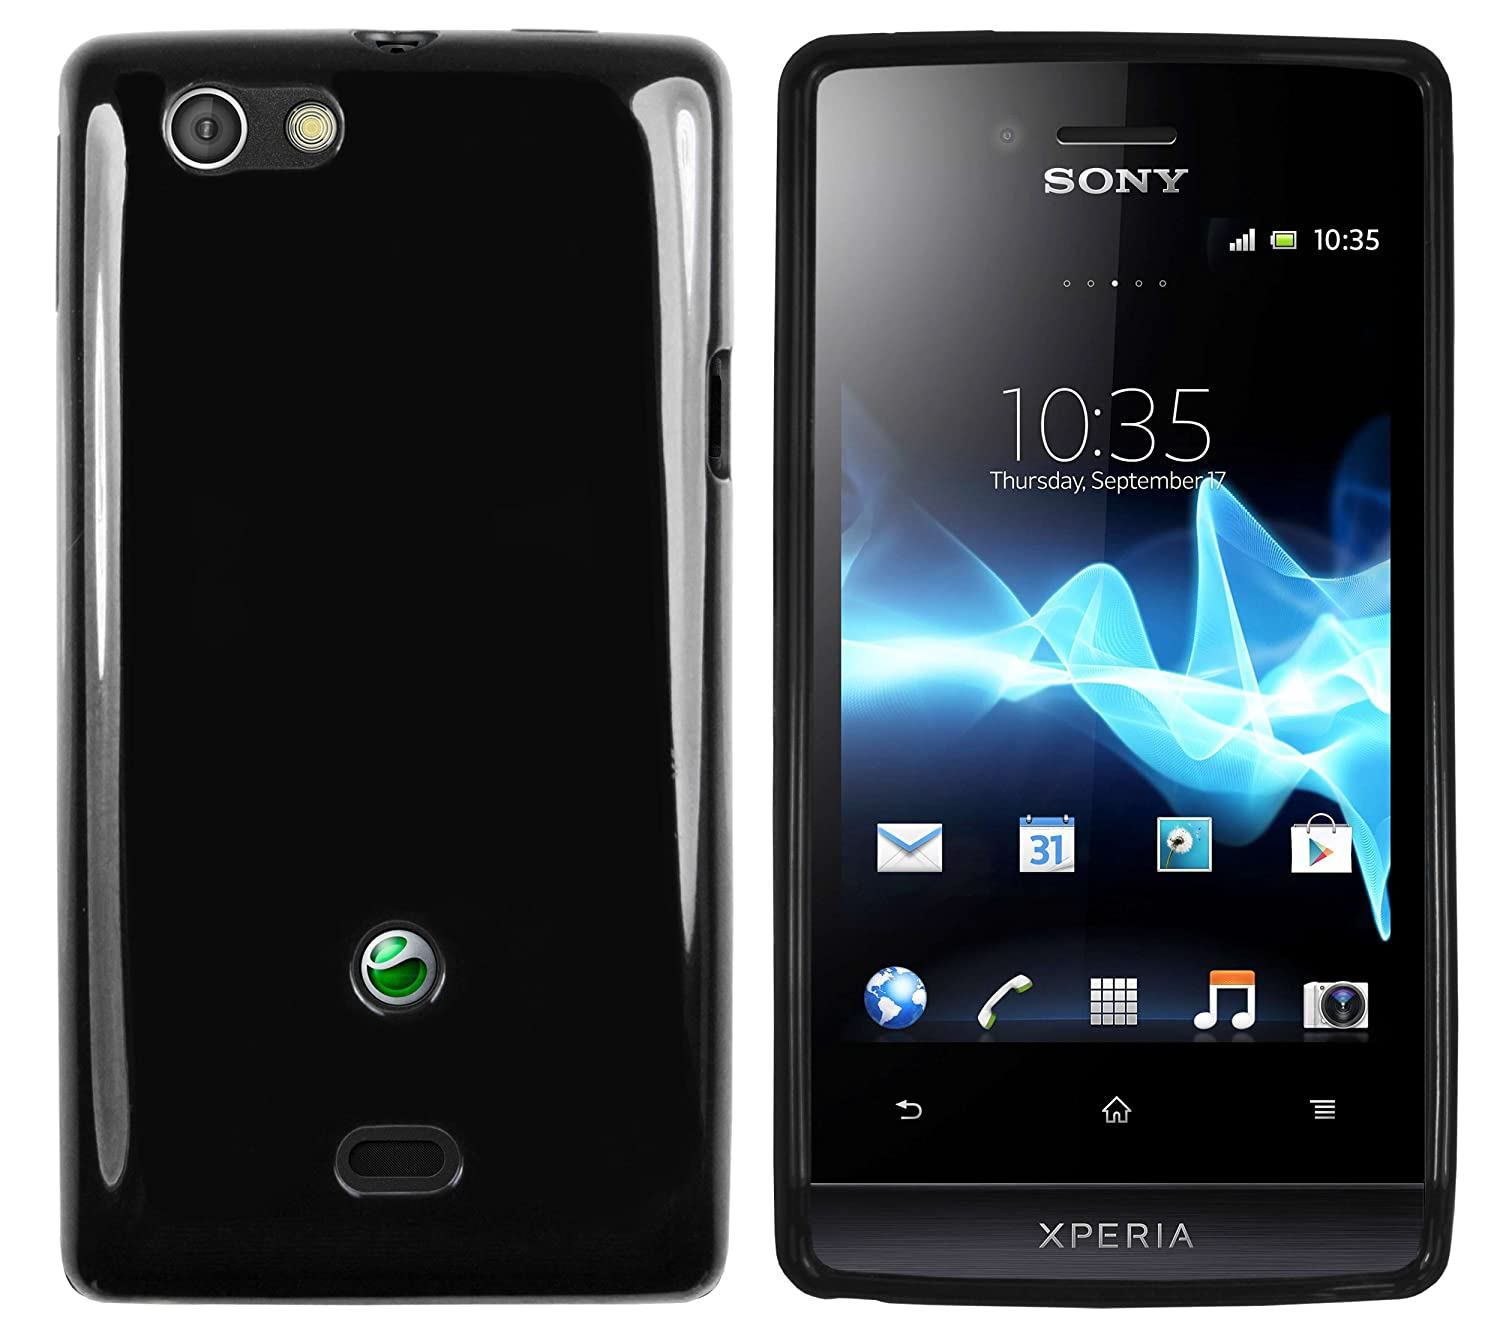 softgel xperia 1 softgel xperia miro rp 45 000 2 softgel xperia tipo ...